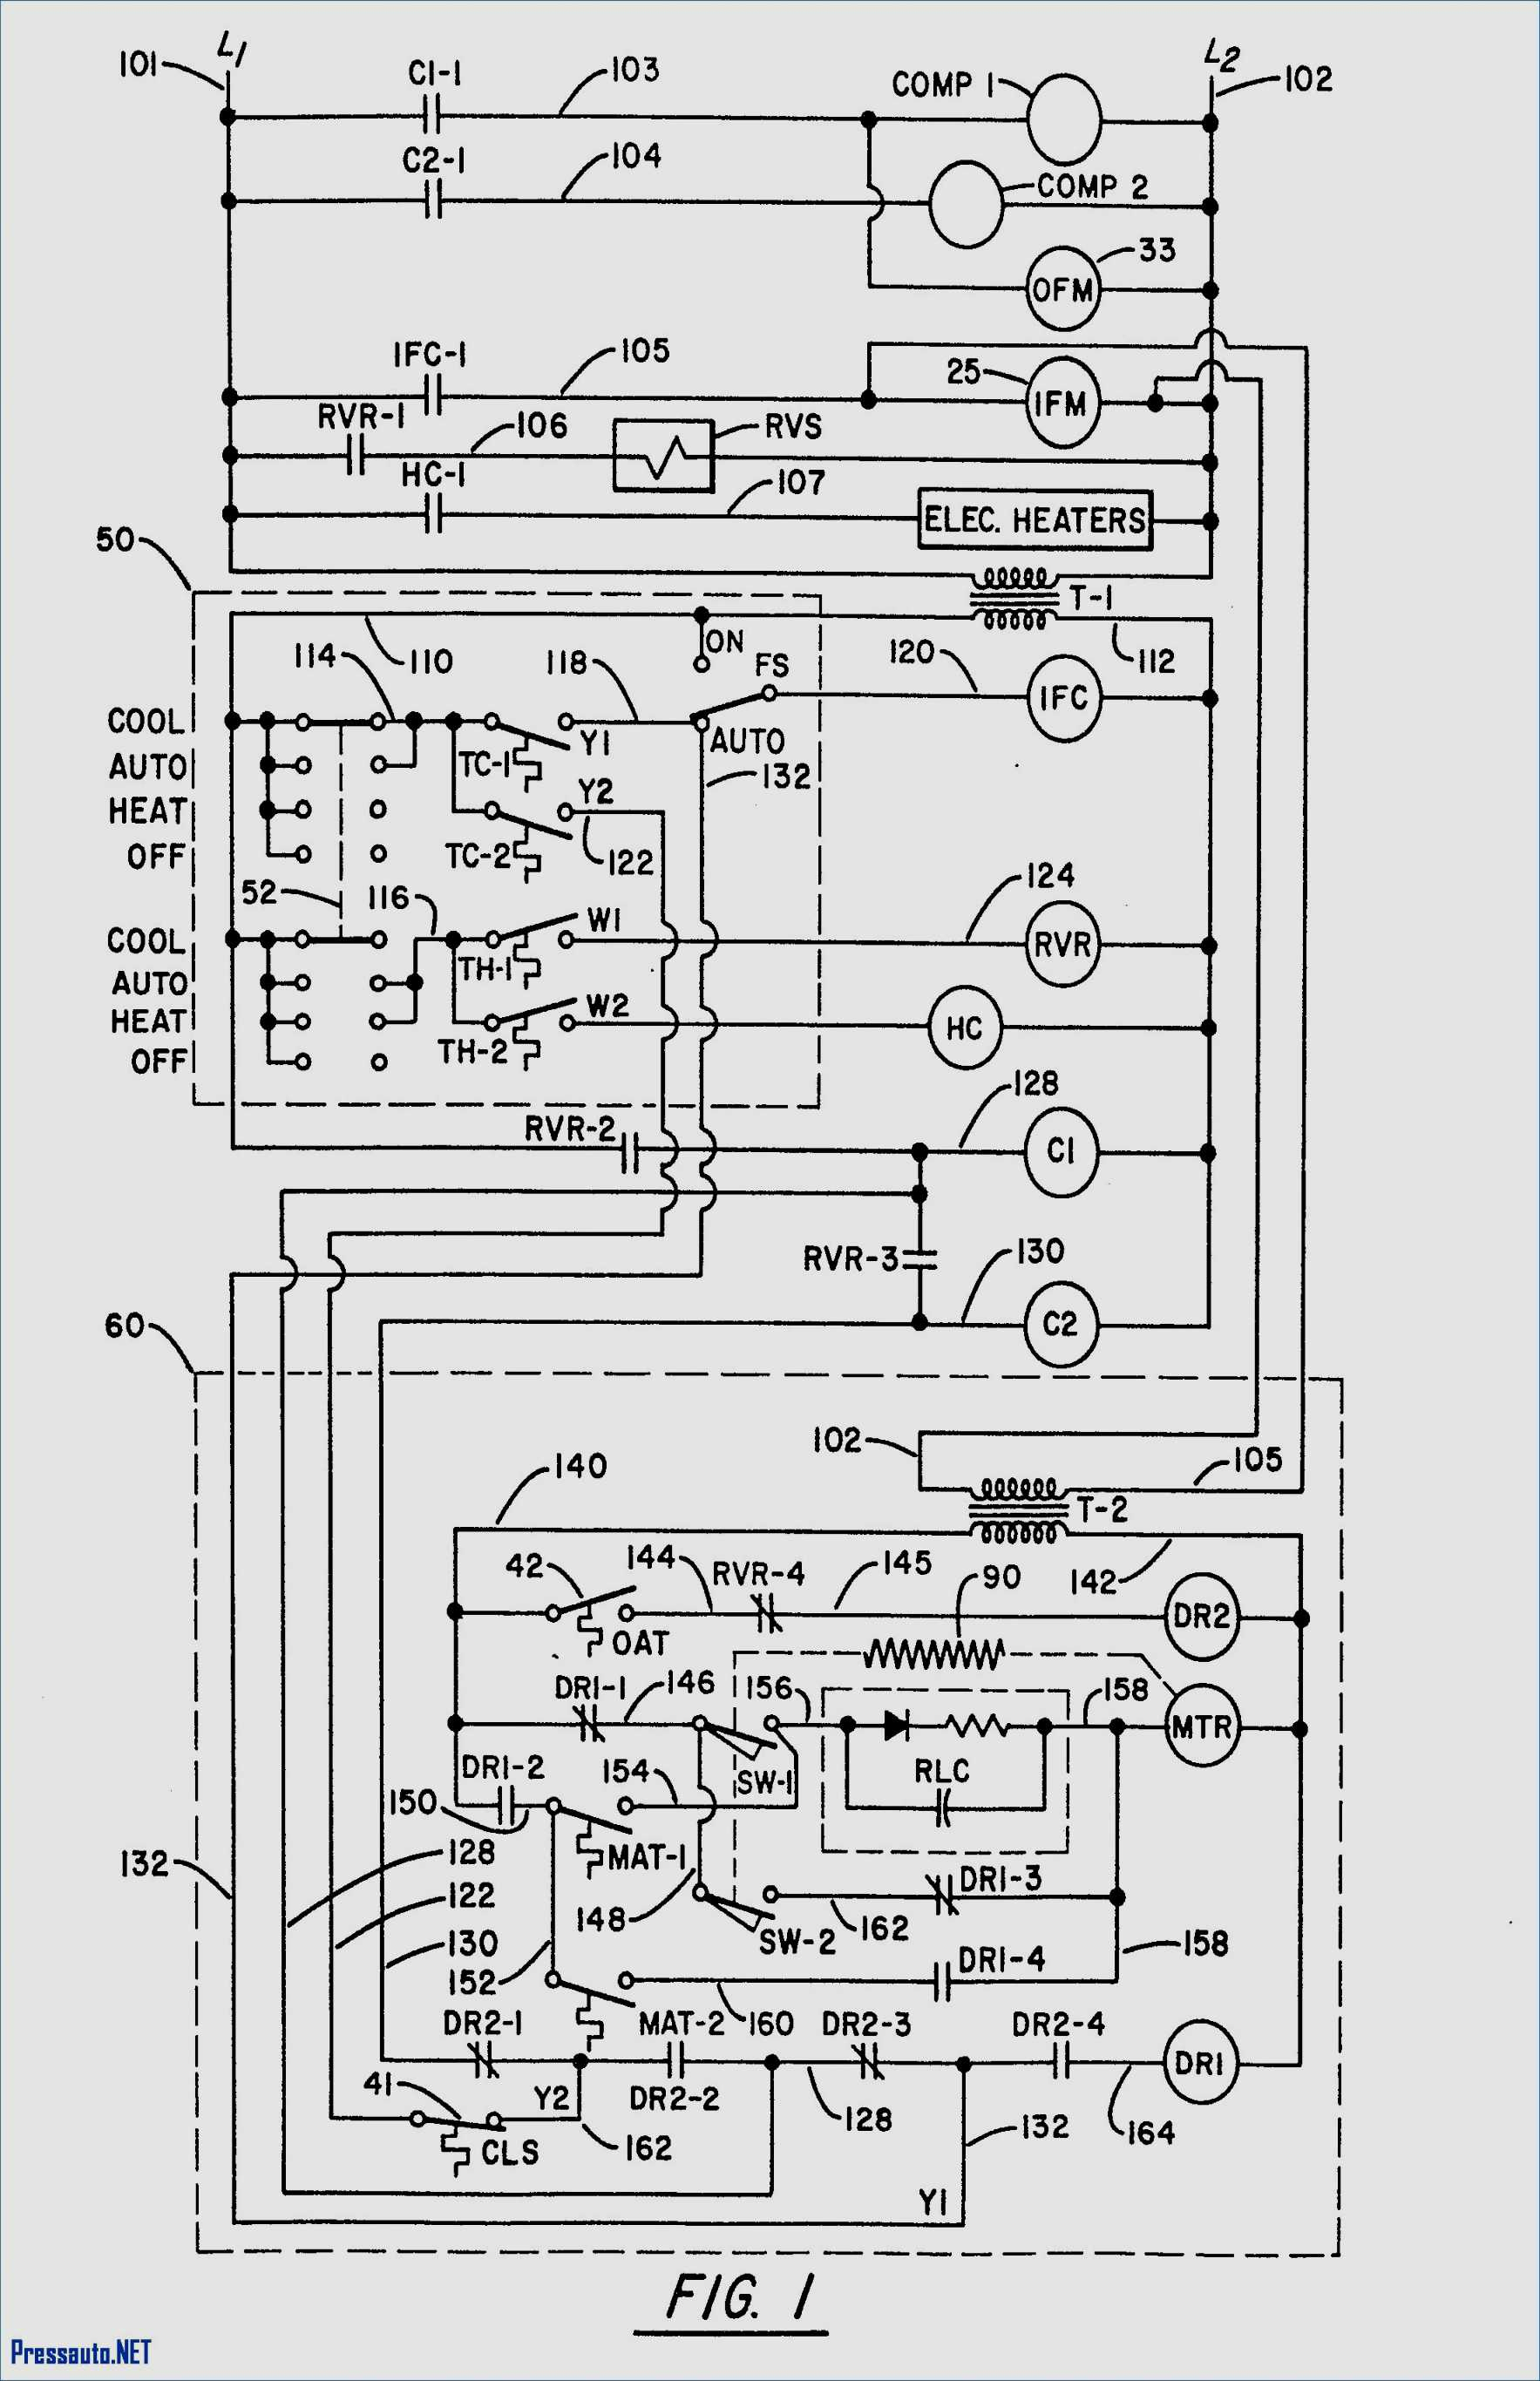 Carrier Air Conditioner Wiring Diagram - Carrier Air Conditioner Wiring Diagram